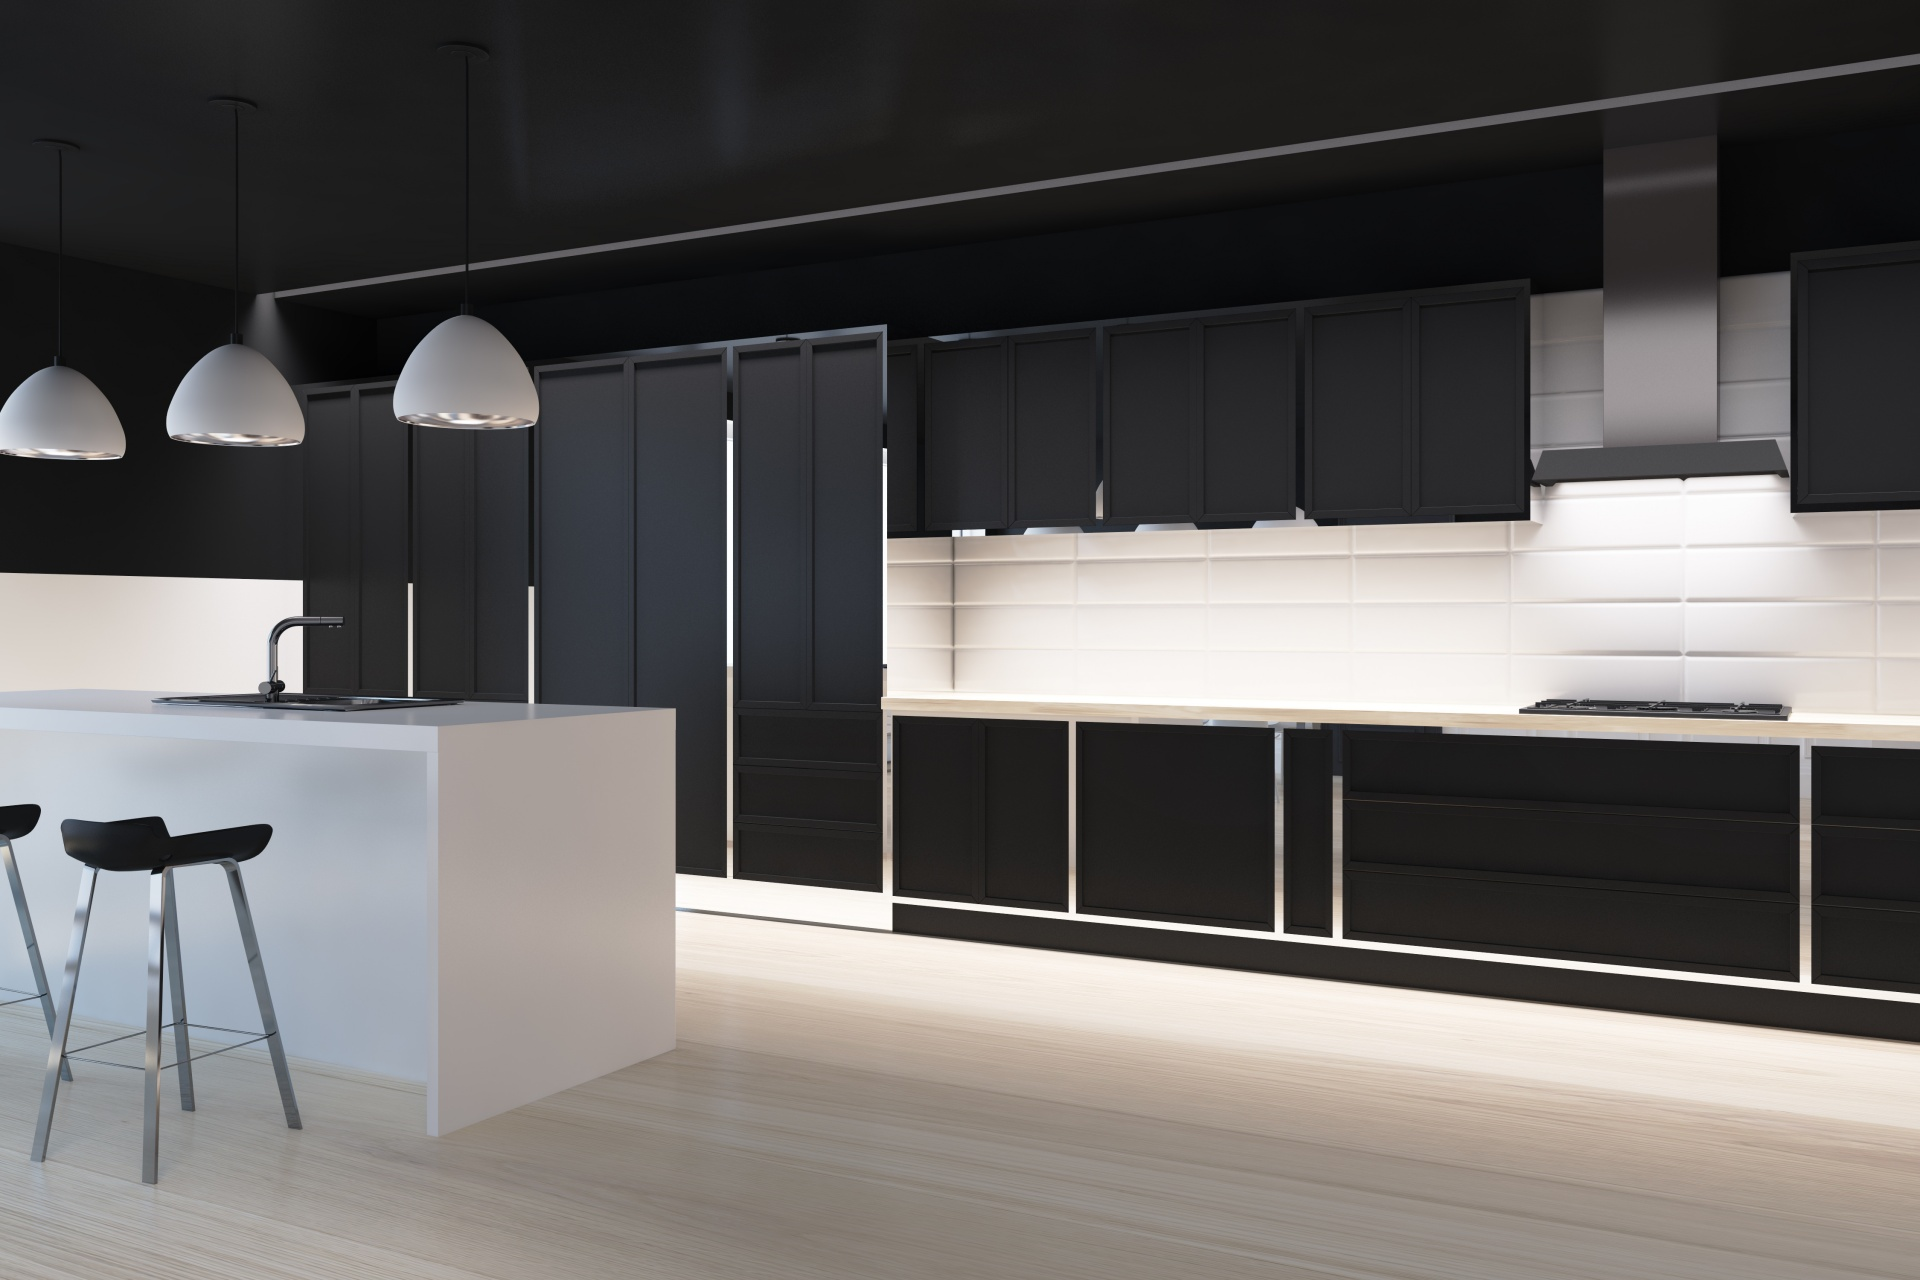 Kitchen w LED Lighting and Handles (1)